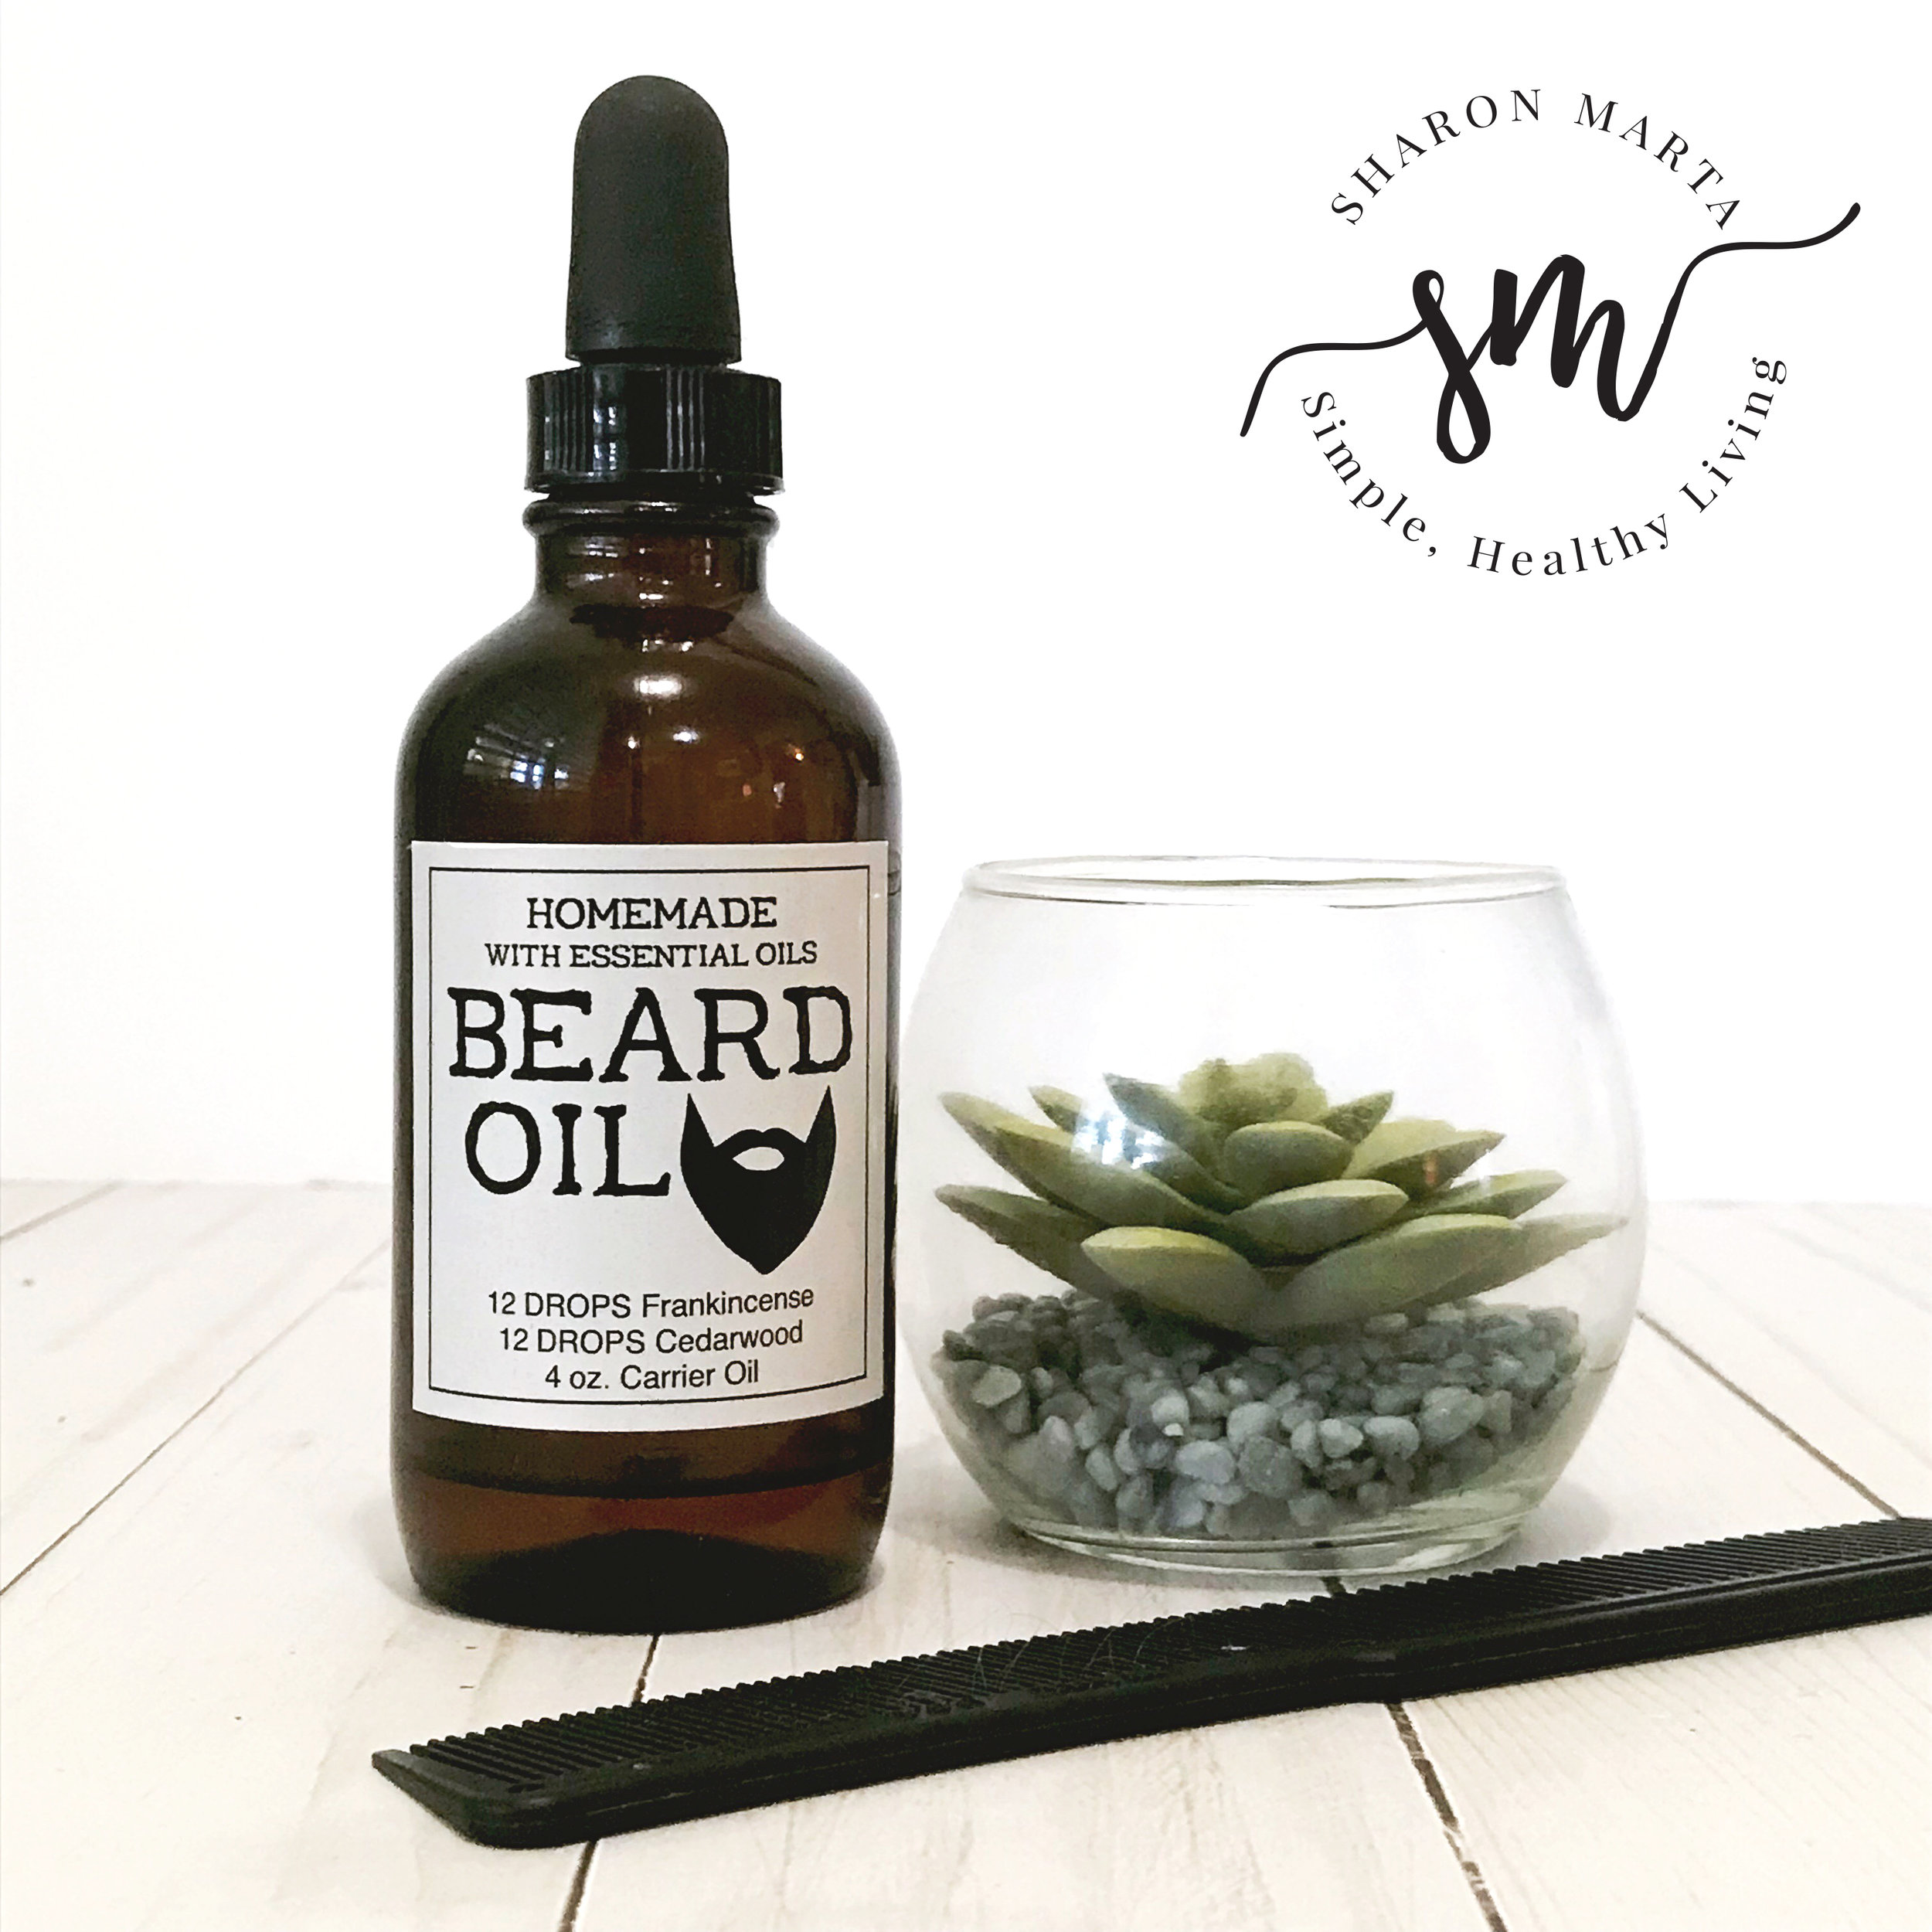 Beard Oil Label with essential oils